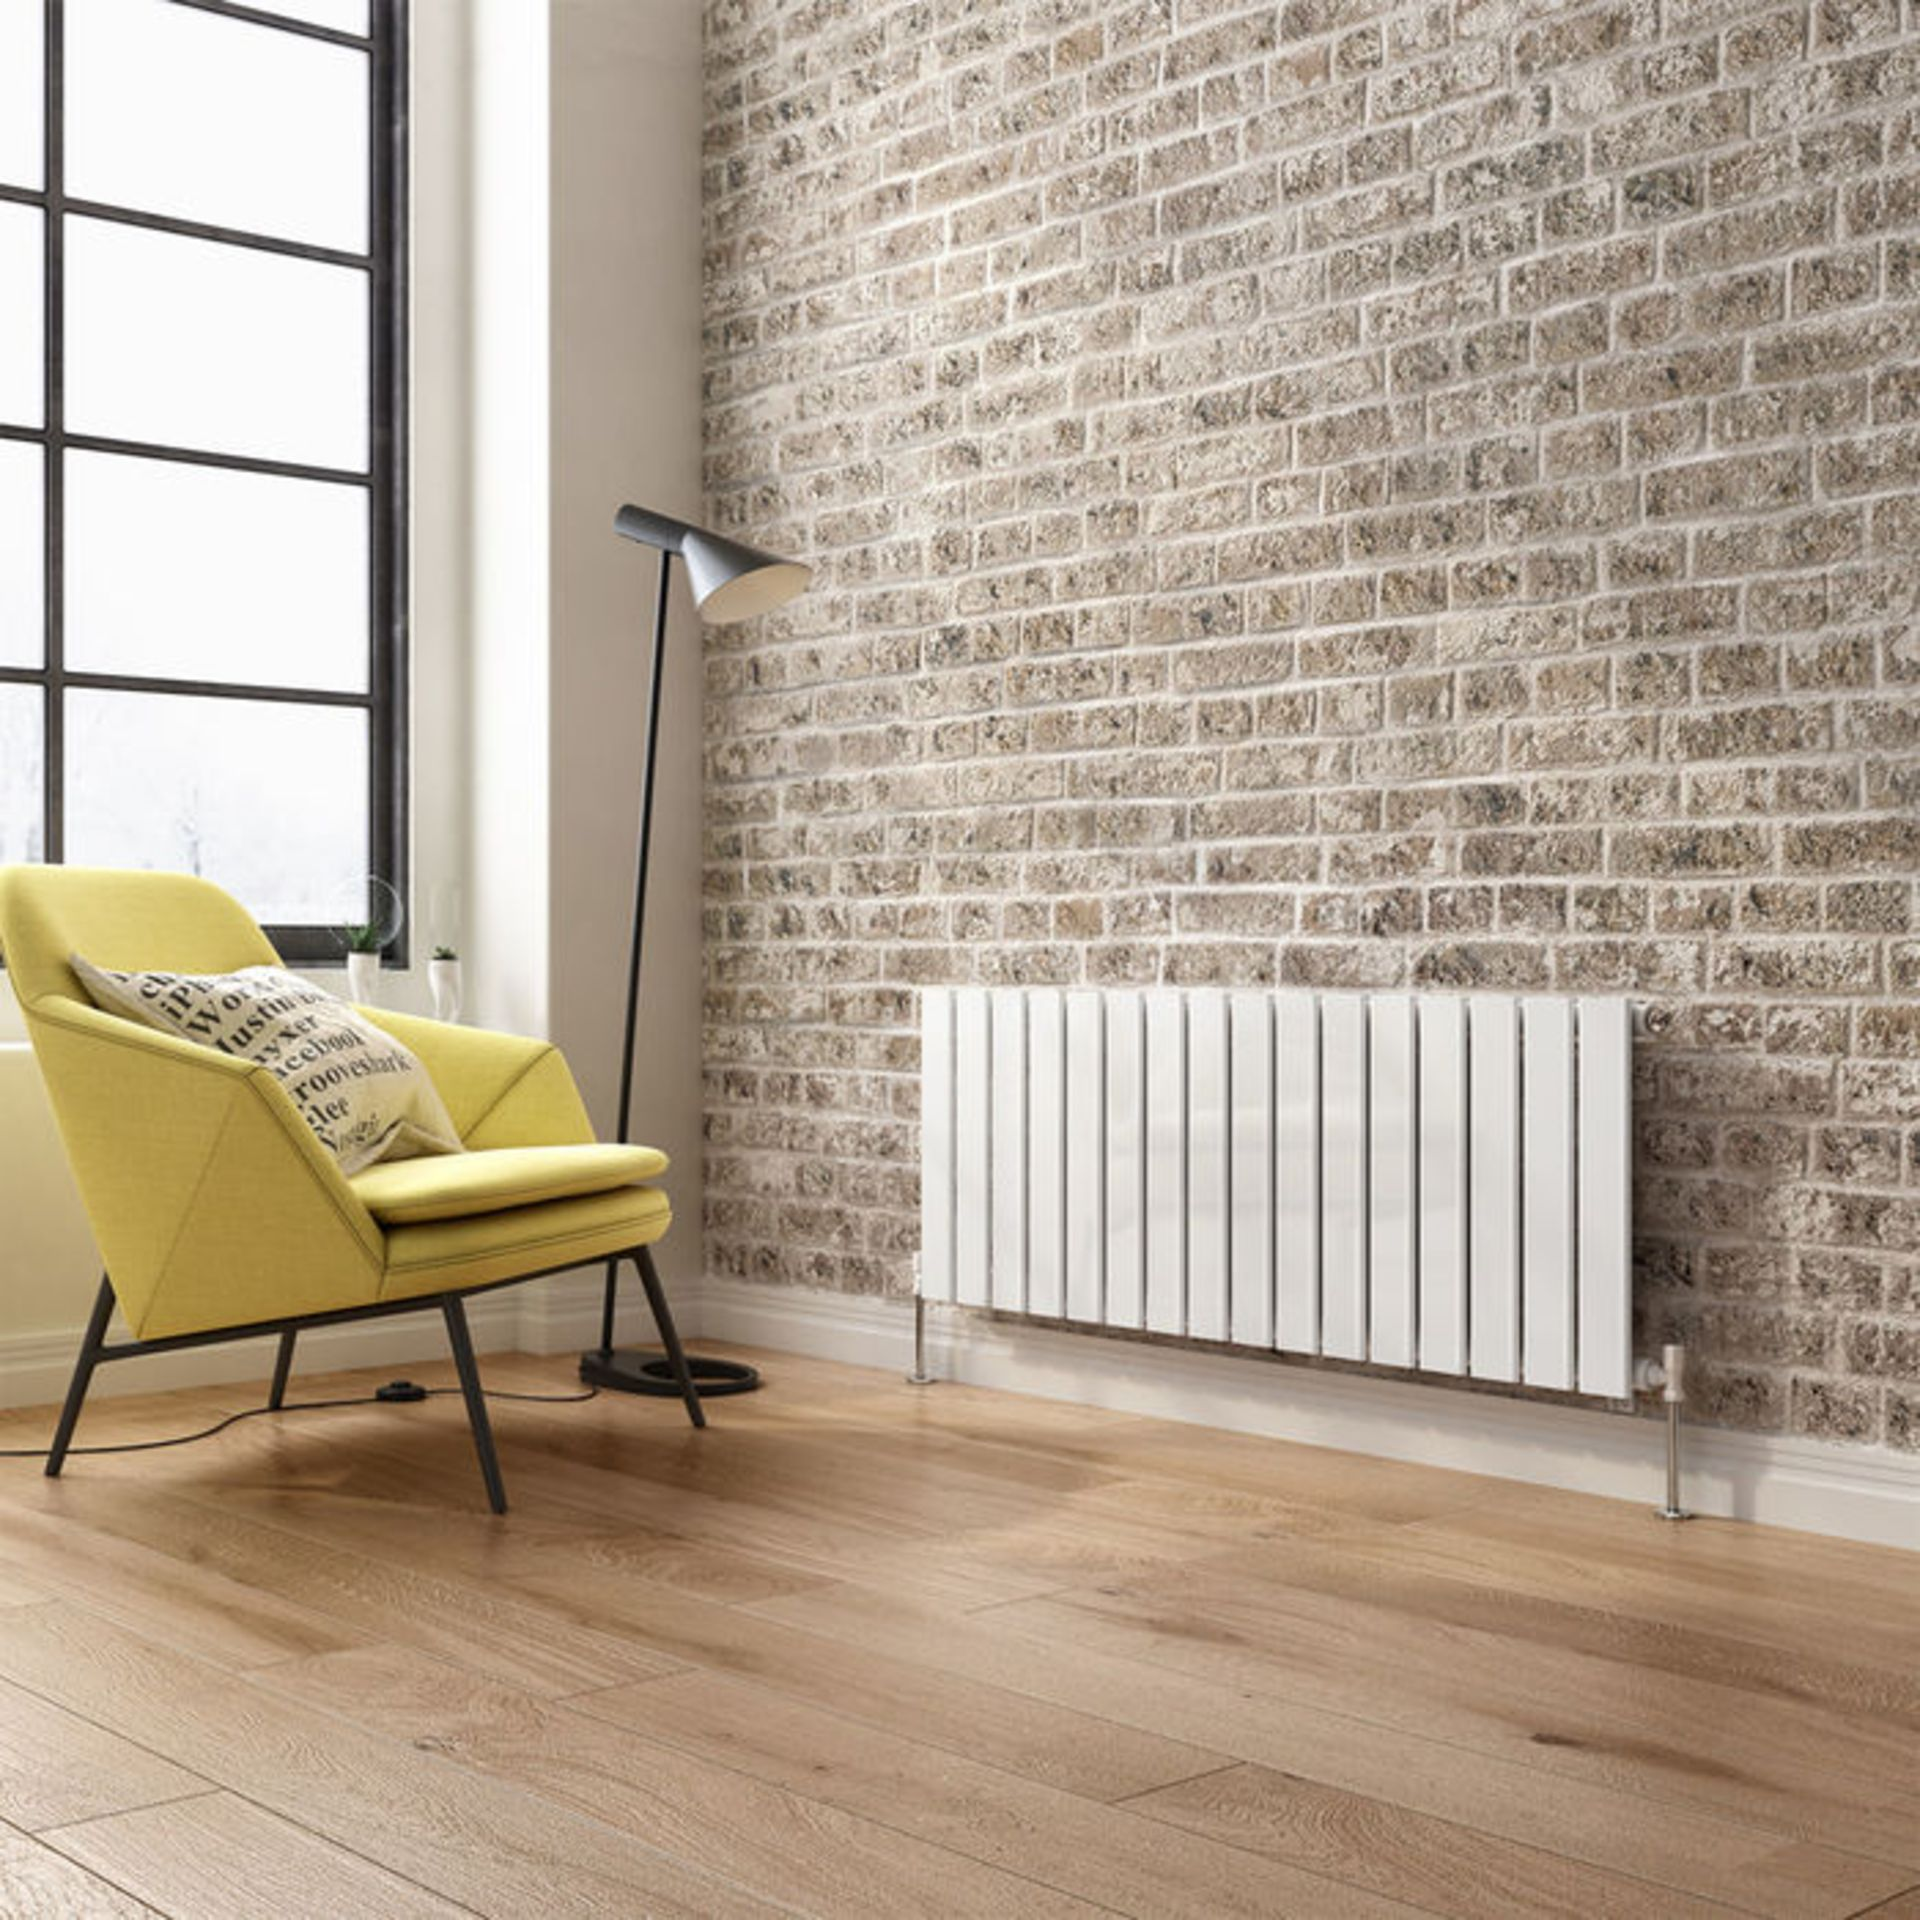 Lot 20 - 635x1200mm Gloss White Single Flat Panel Horizontal Radiator. RRP £392.99. Our entire range of...